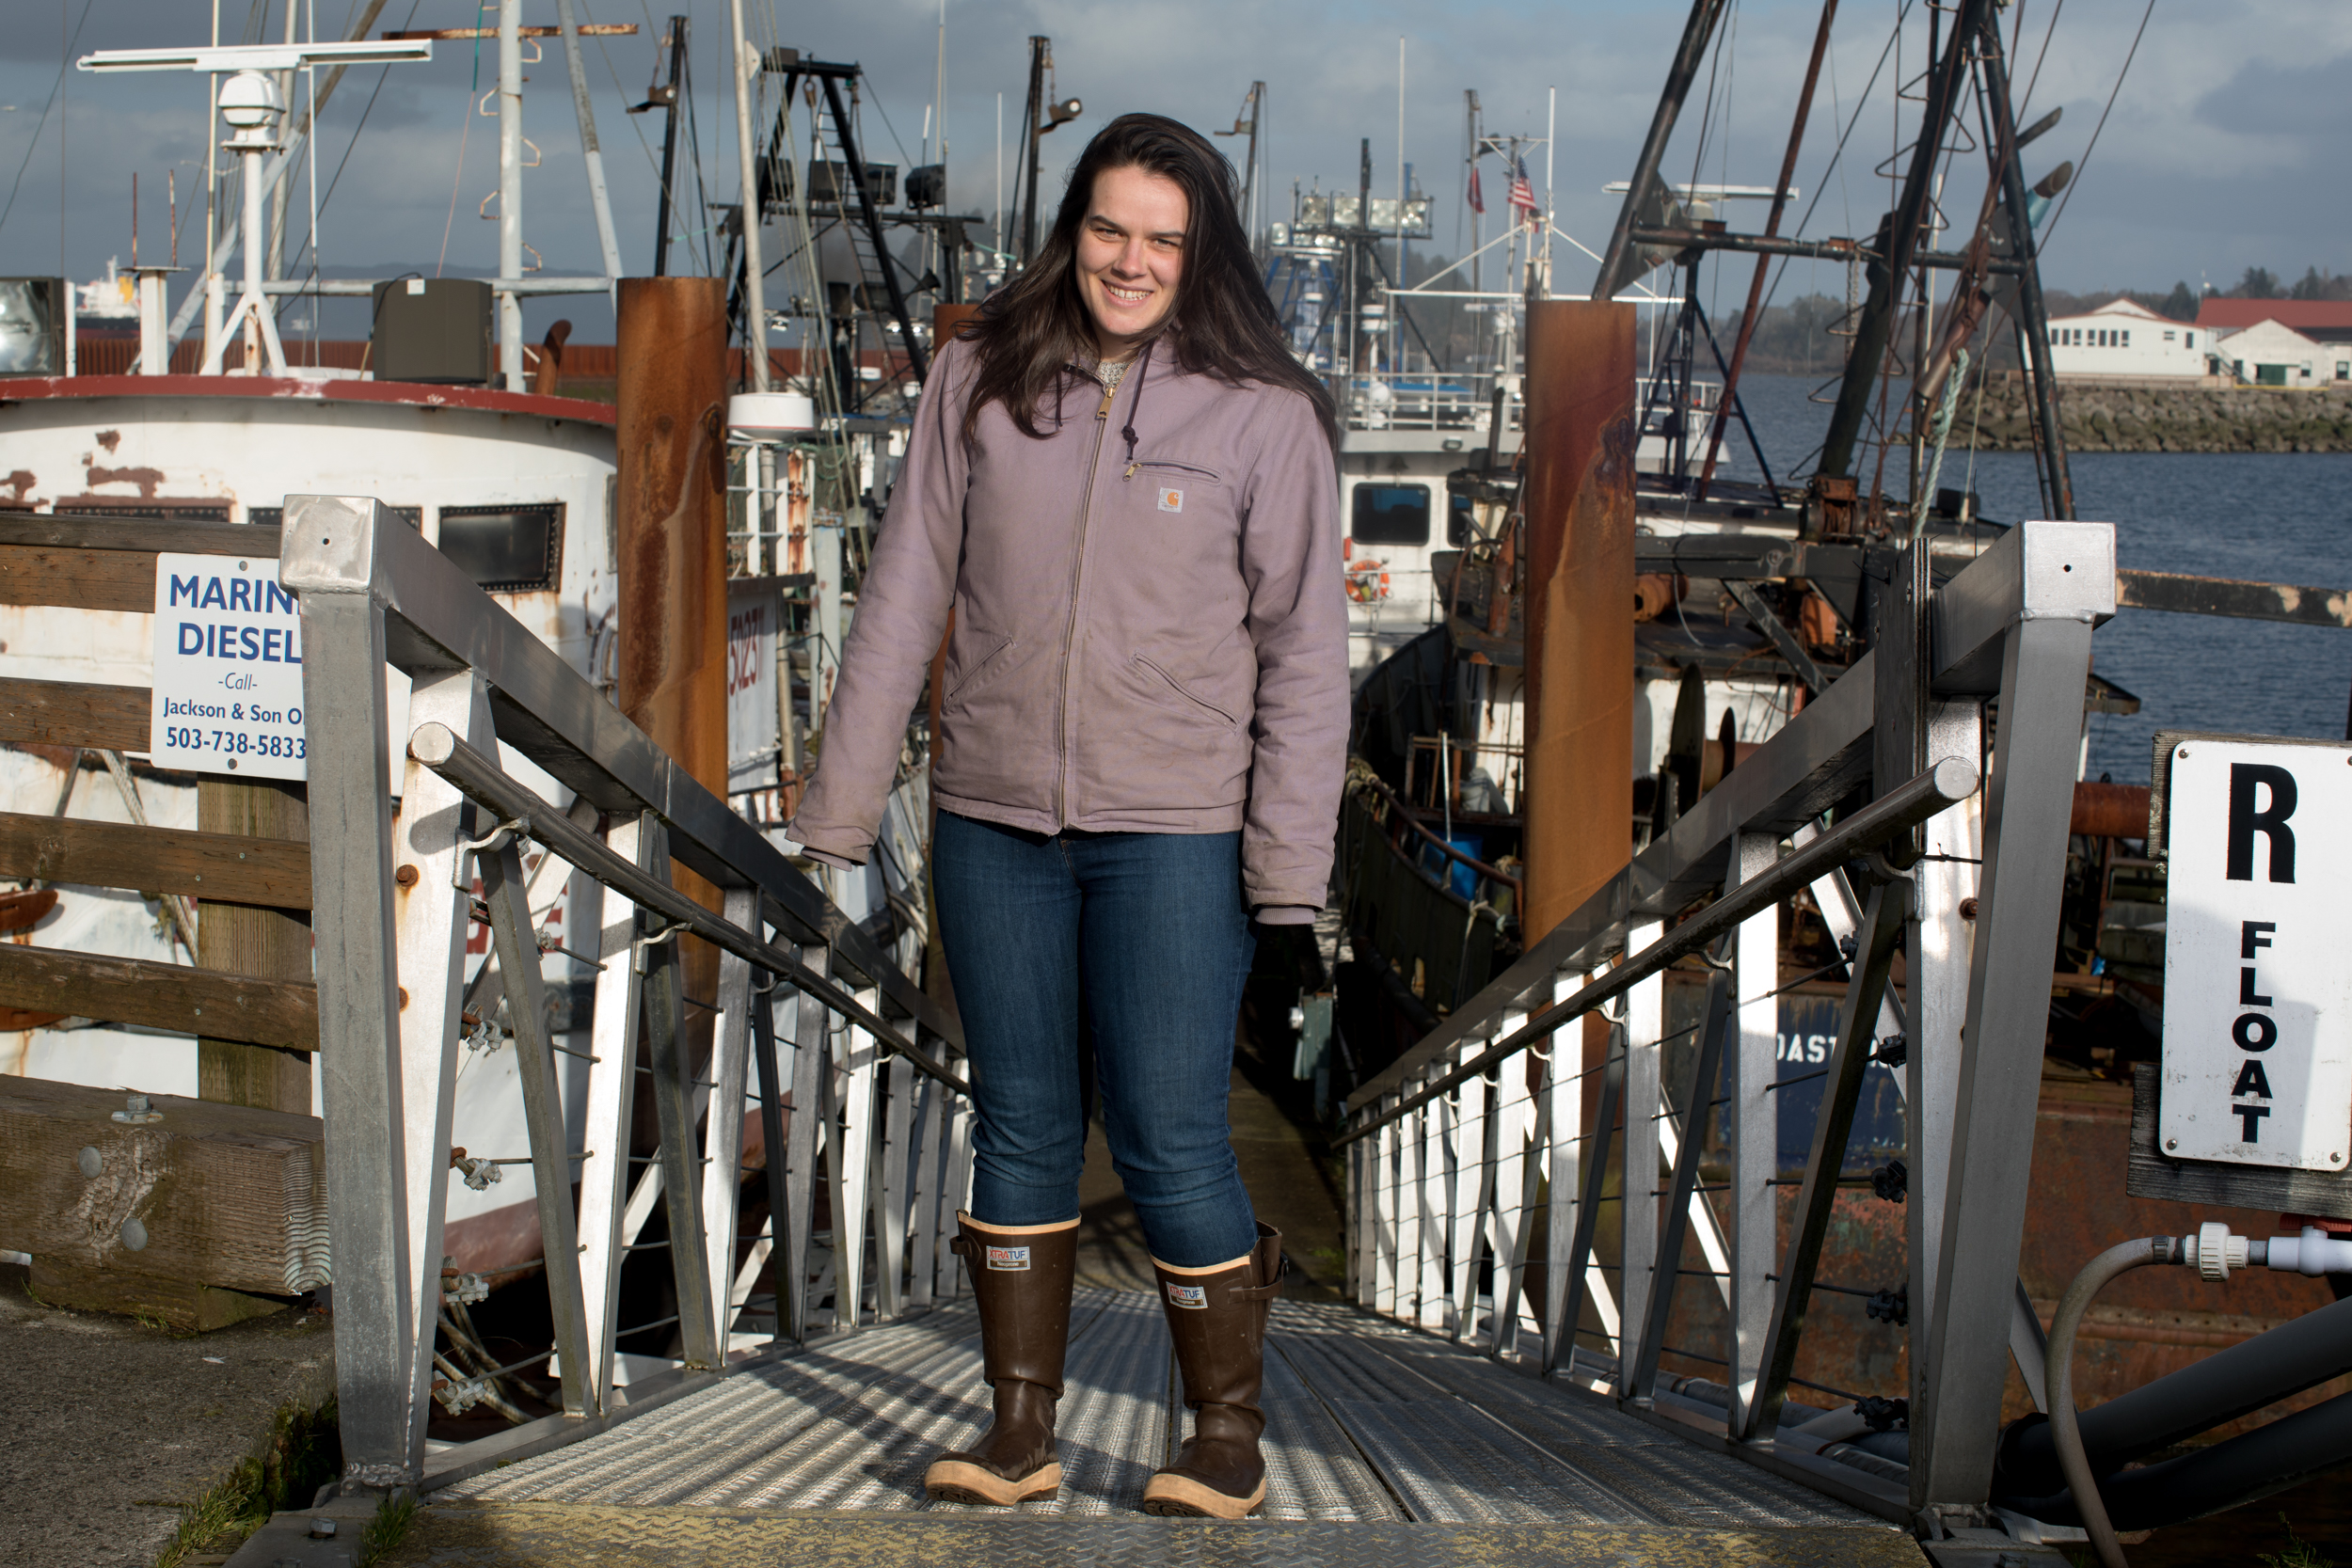 Maggie Bursch of Bellingham, Washington stands for a portrait in the East Mooring Basin of Astoria.